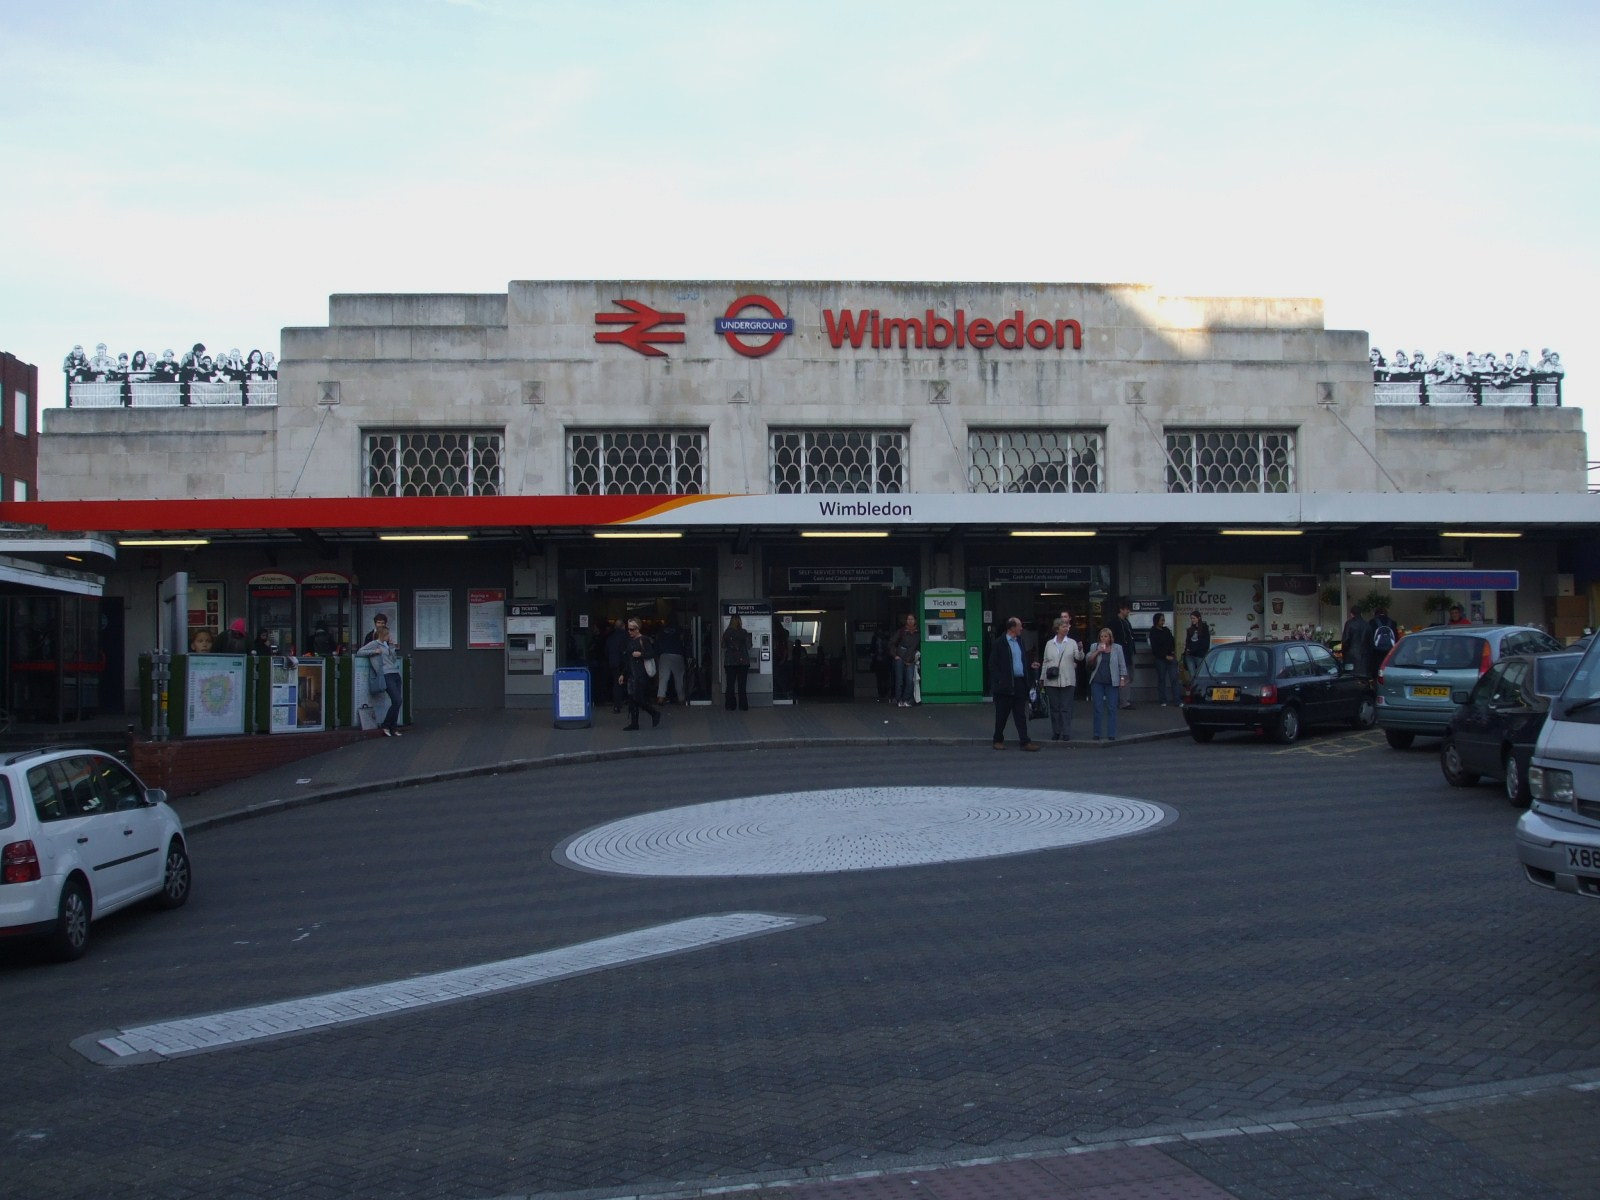 Wimbledon Station, west London